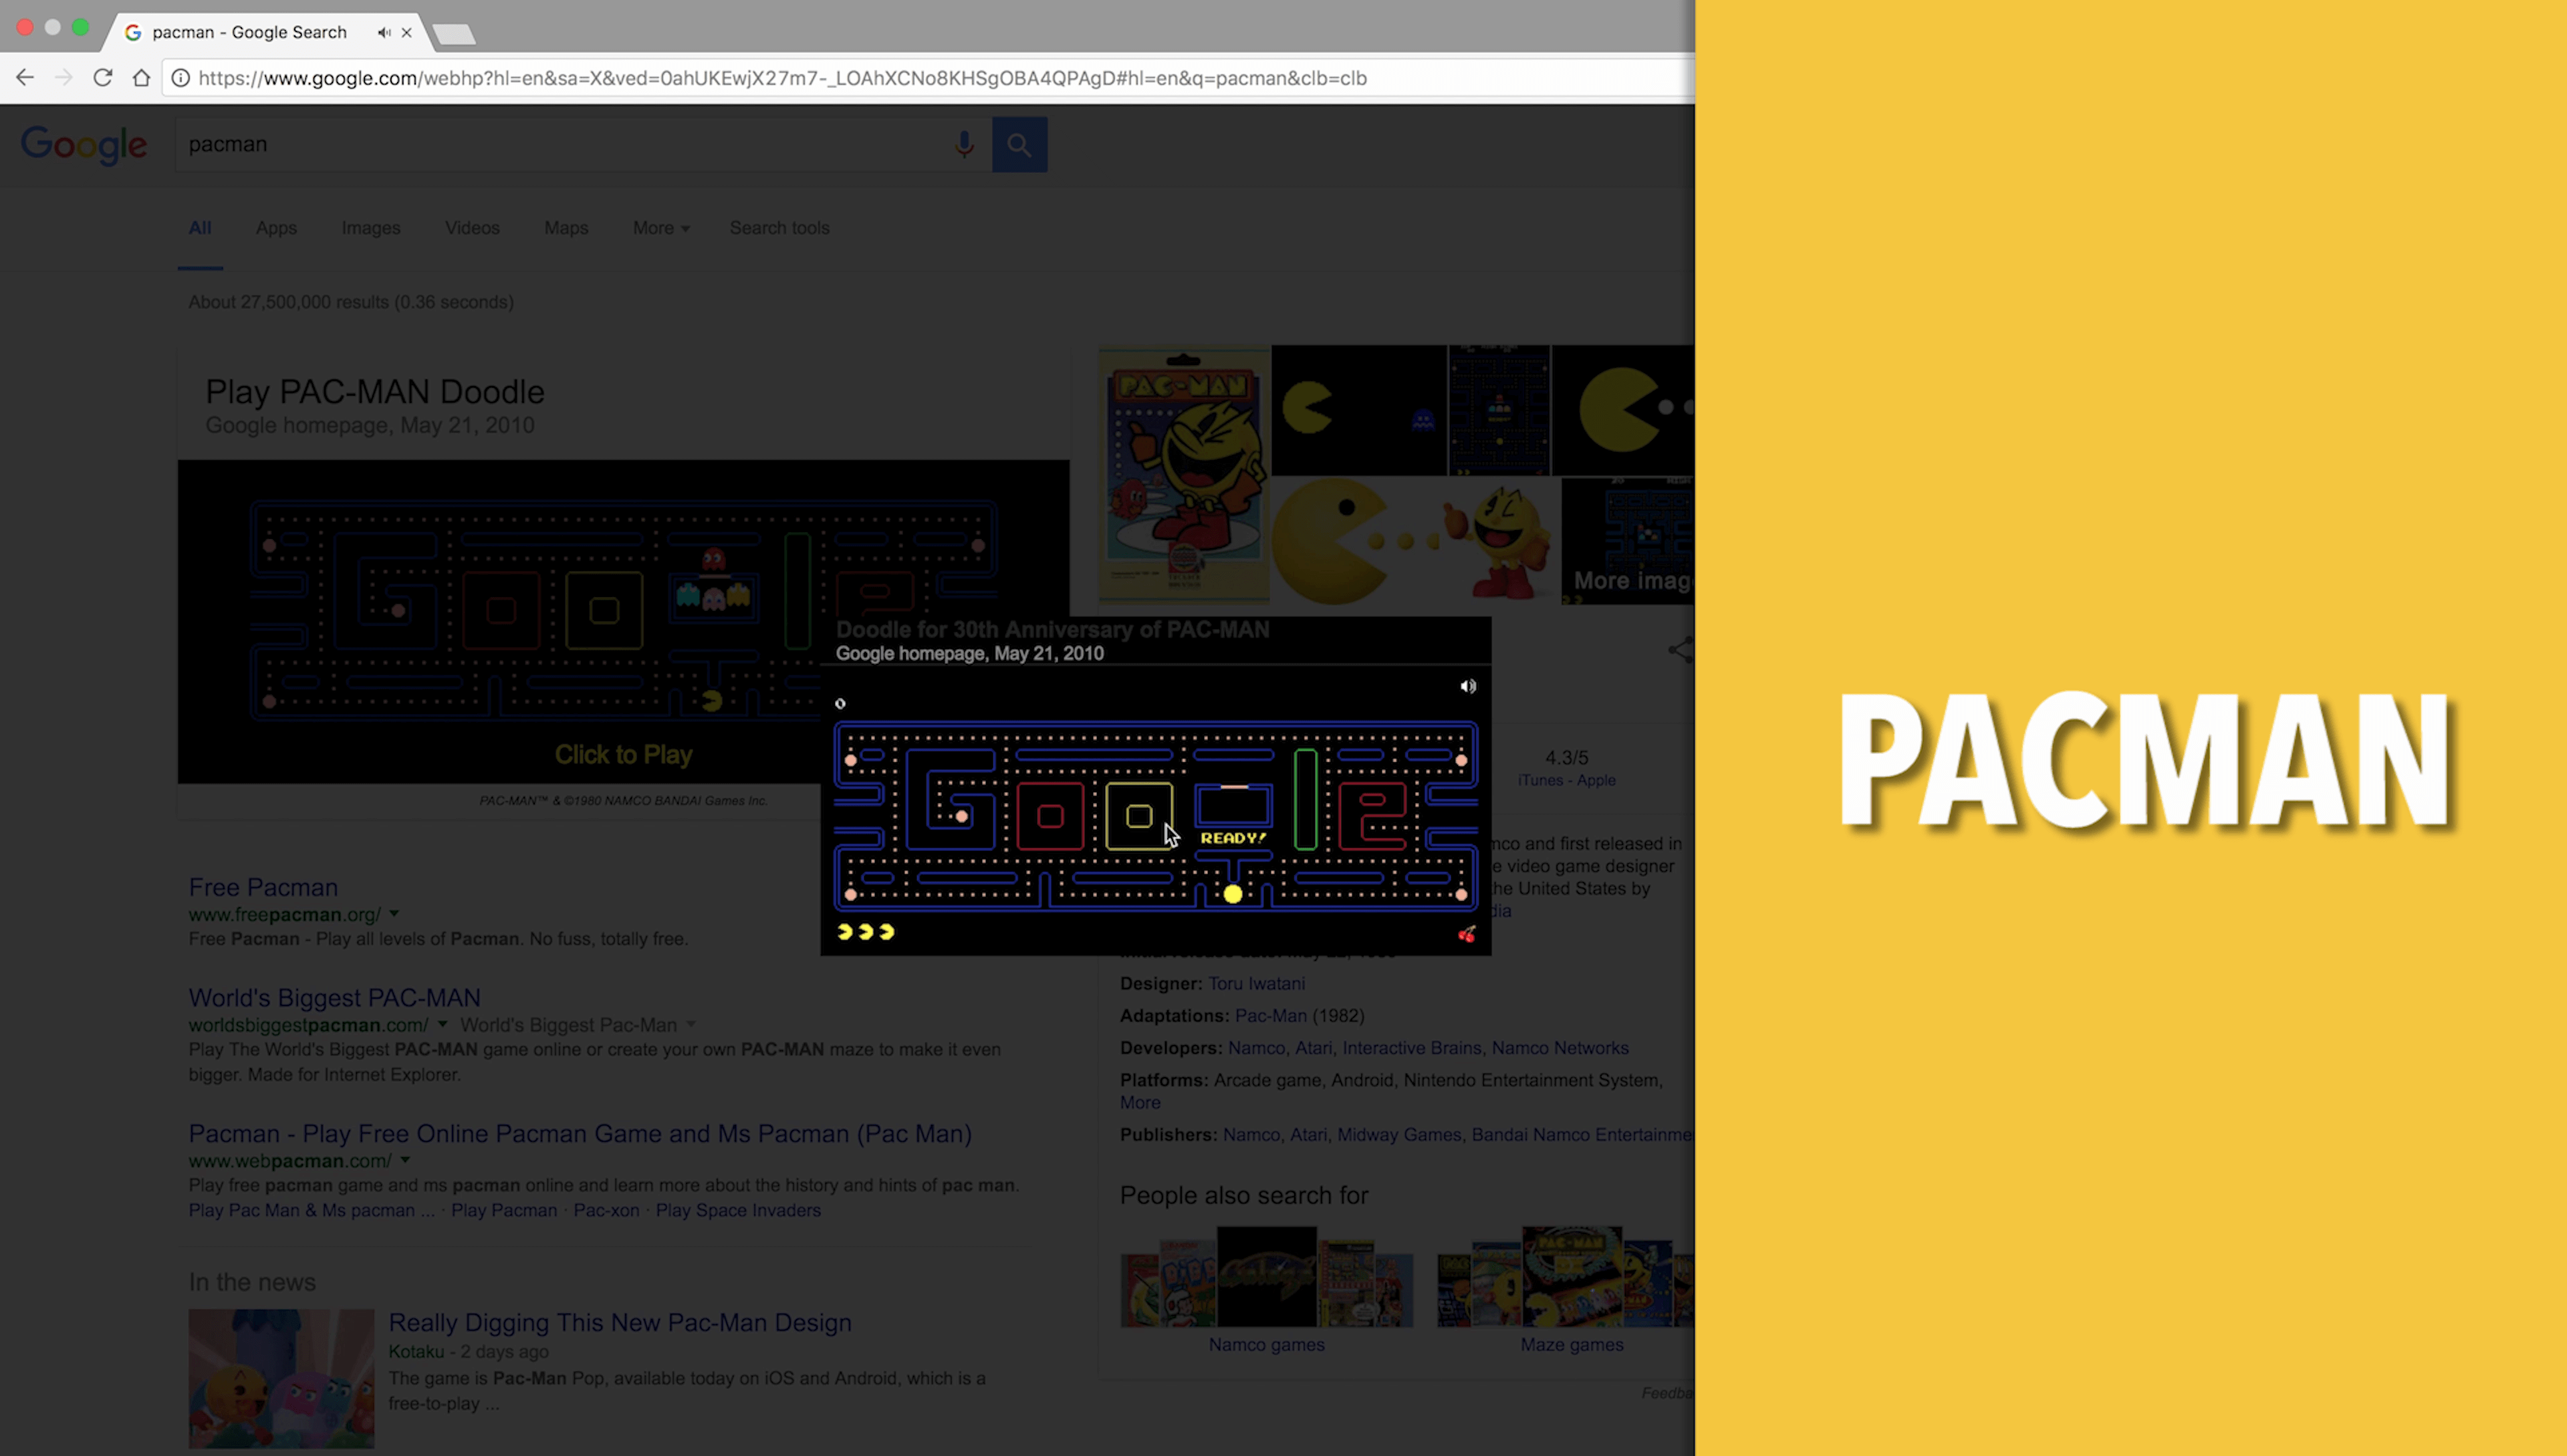 Pacman Google Search Game